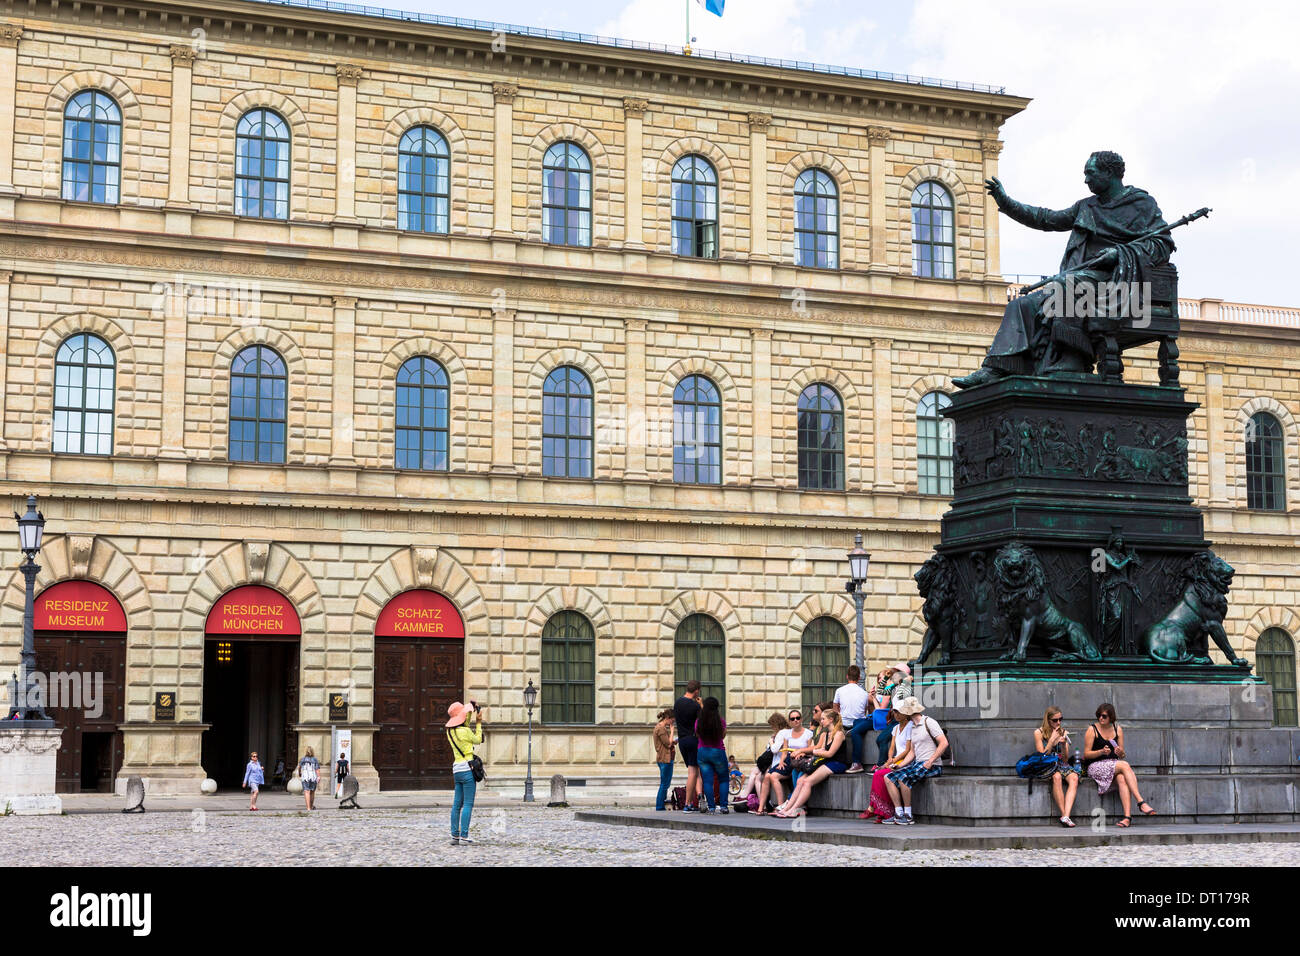 Tourist photographs statue of Maximillian Iosepho, King of Bavaria by the Residenz in Munich, Bavaria, Germany - Stock Image